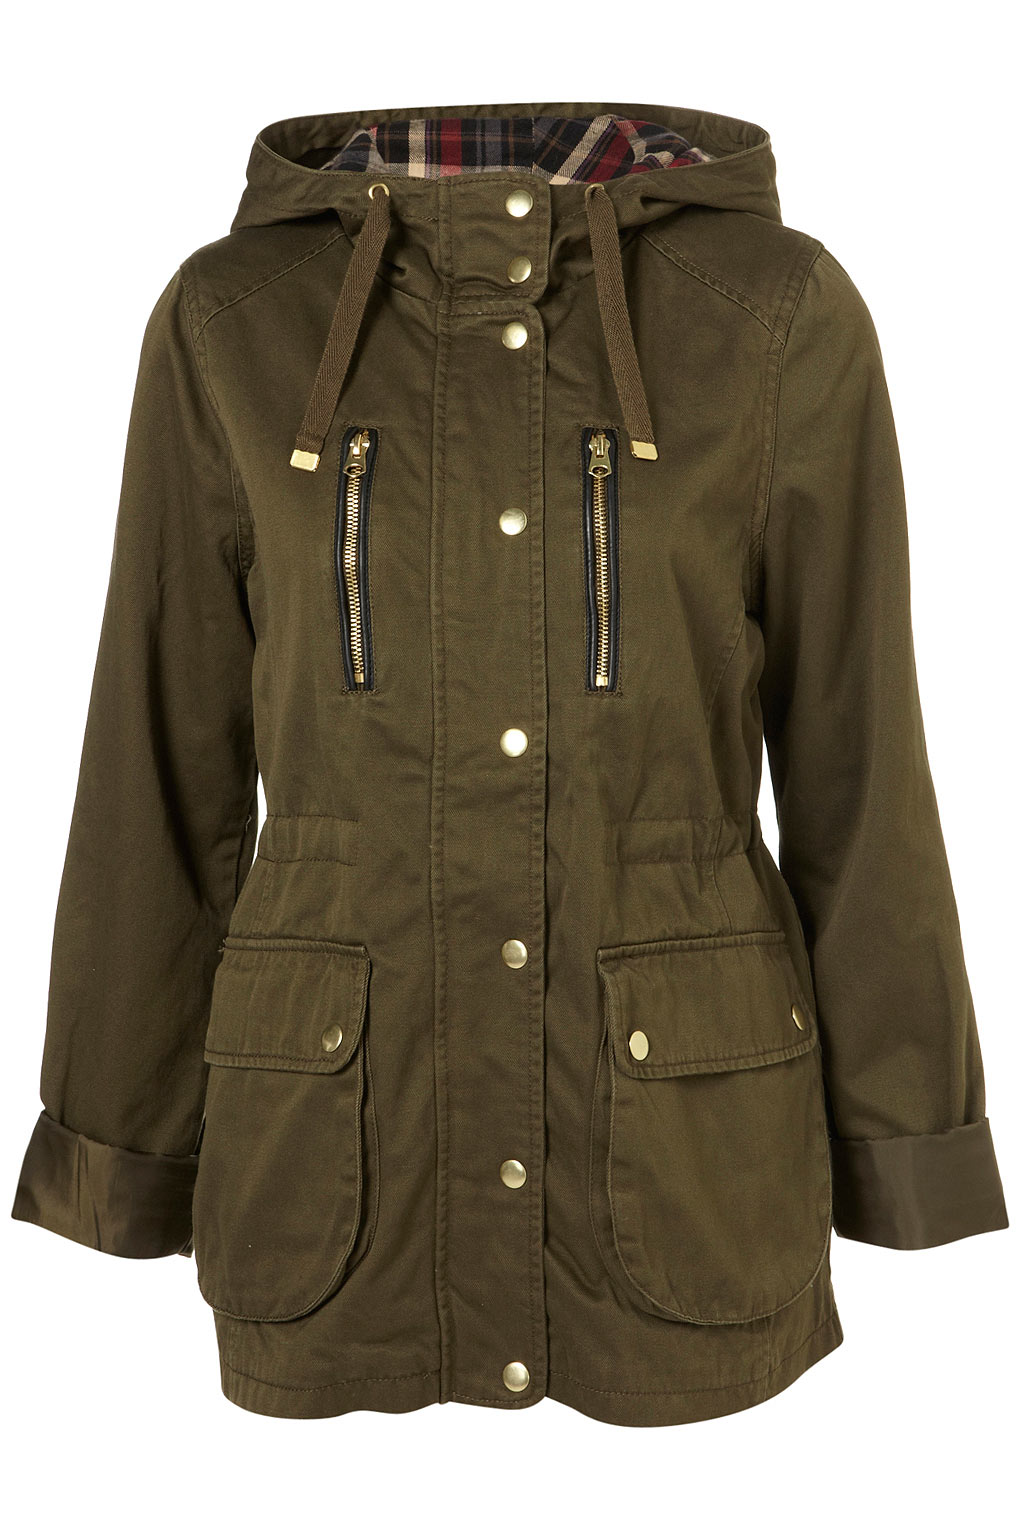 matches. ($ - $1,) Find great deals on the latest styles of Green khaki jacket. Compare prices & save money on Men's Jackets & Coats.